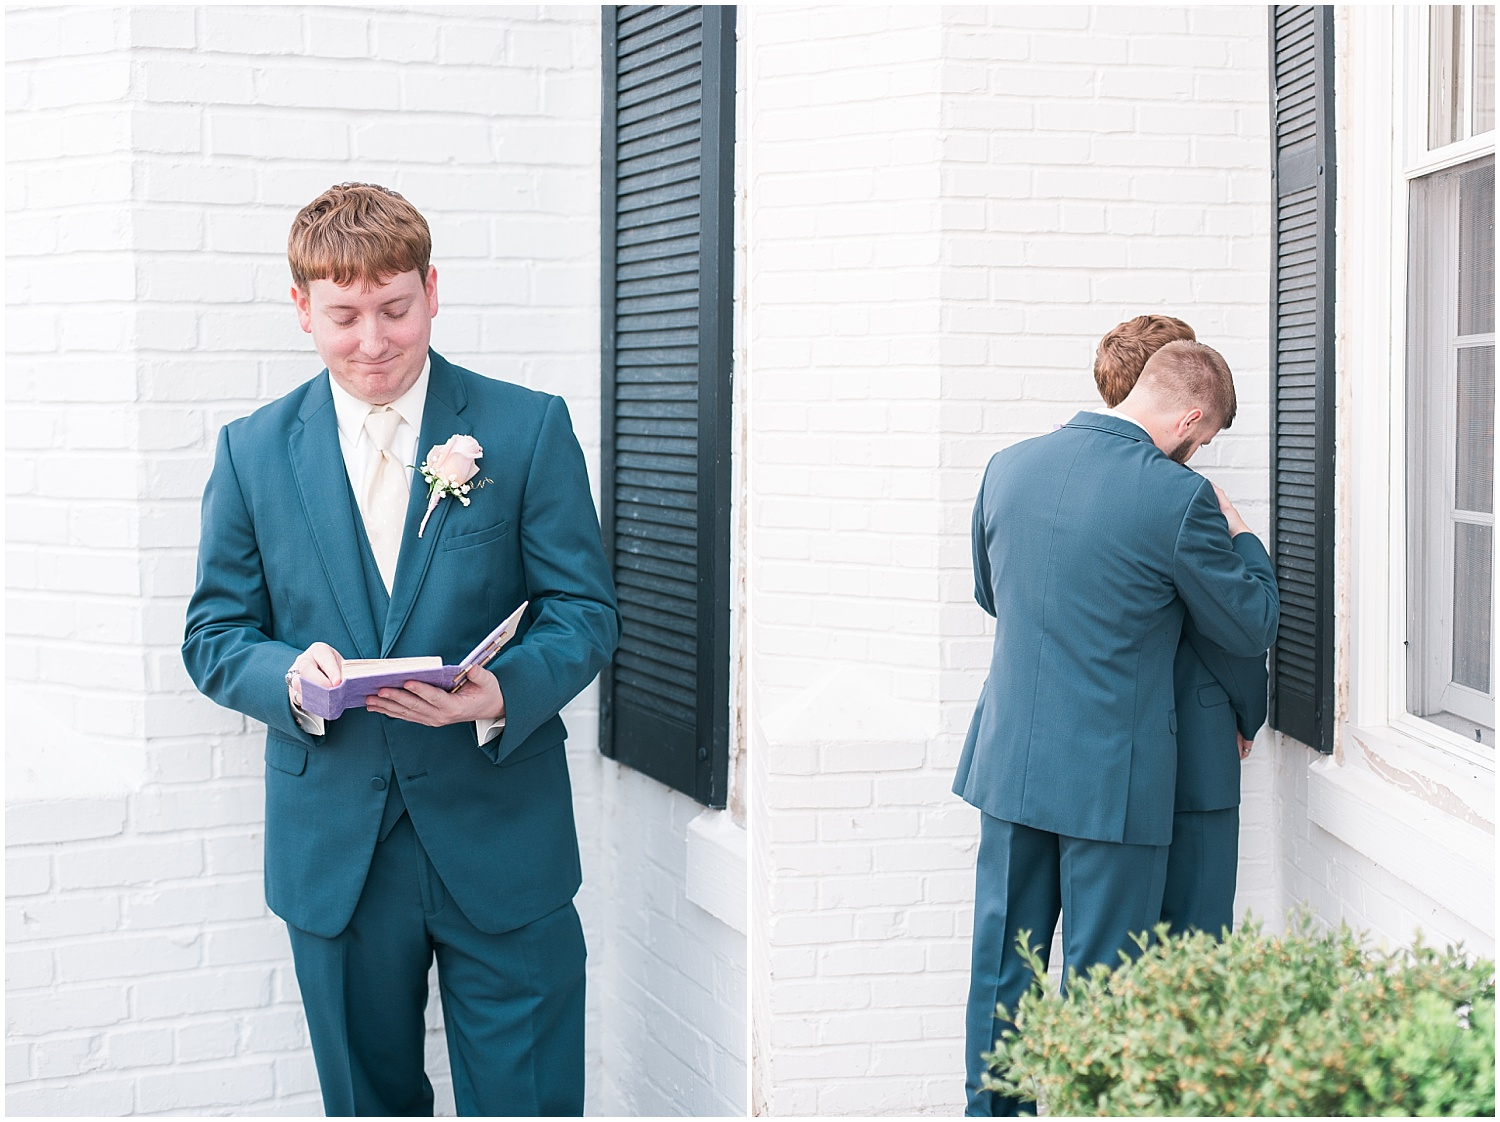 Taylor read a sweet letter from his bride. His brother was there to calm his nerves!